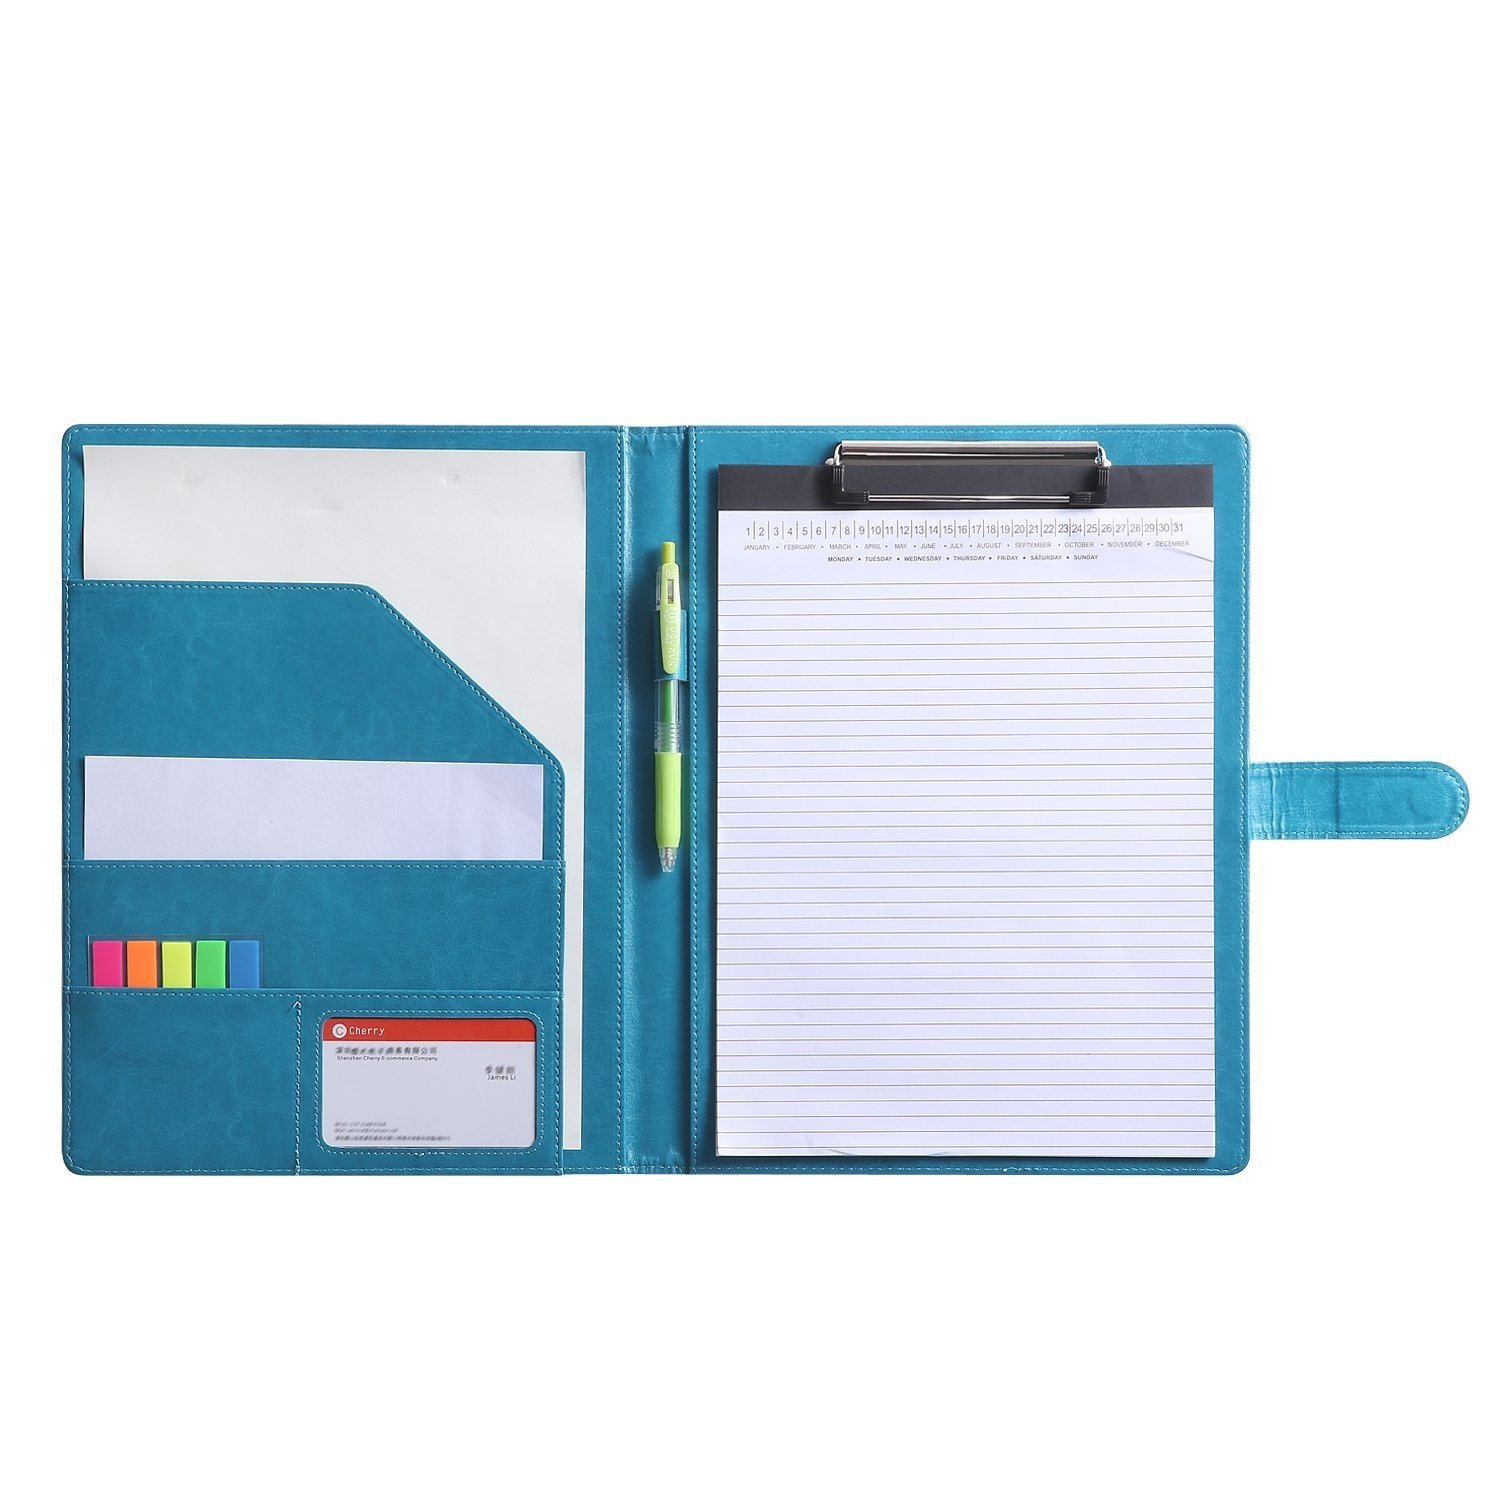 Resume Folder Clipboard Holder Letter Size A4 Legal Pad, Portfolio Pad Folio Document Organizer for Interview & Business (Turquoise)